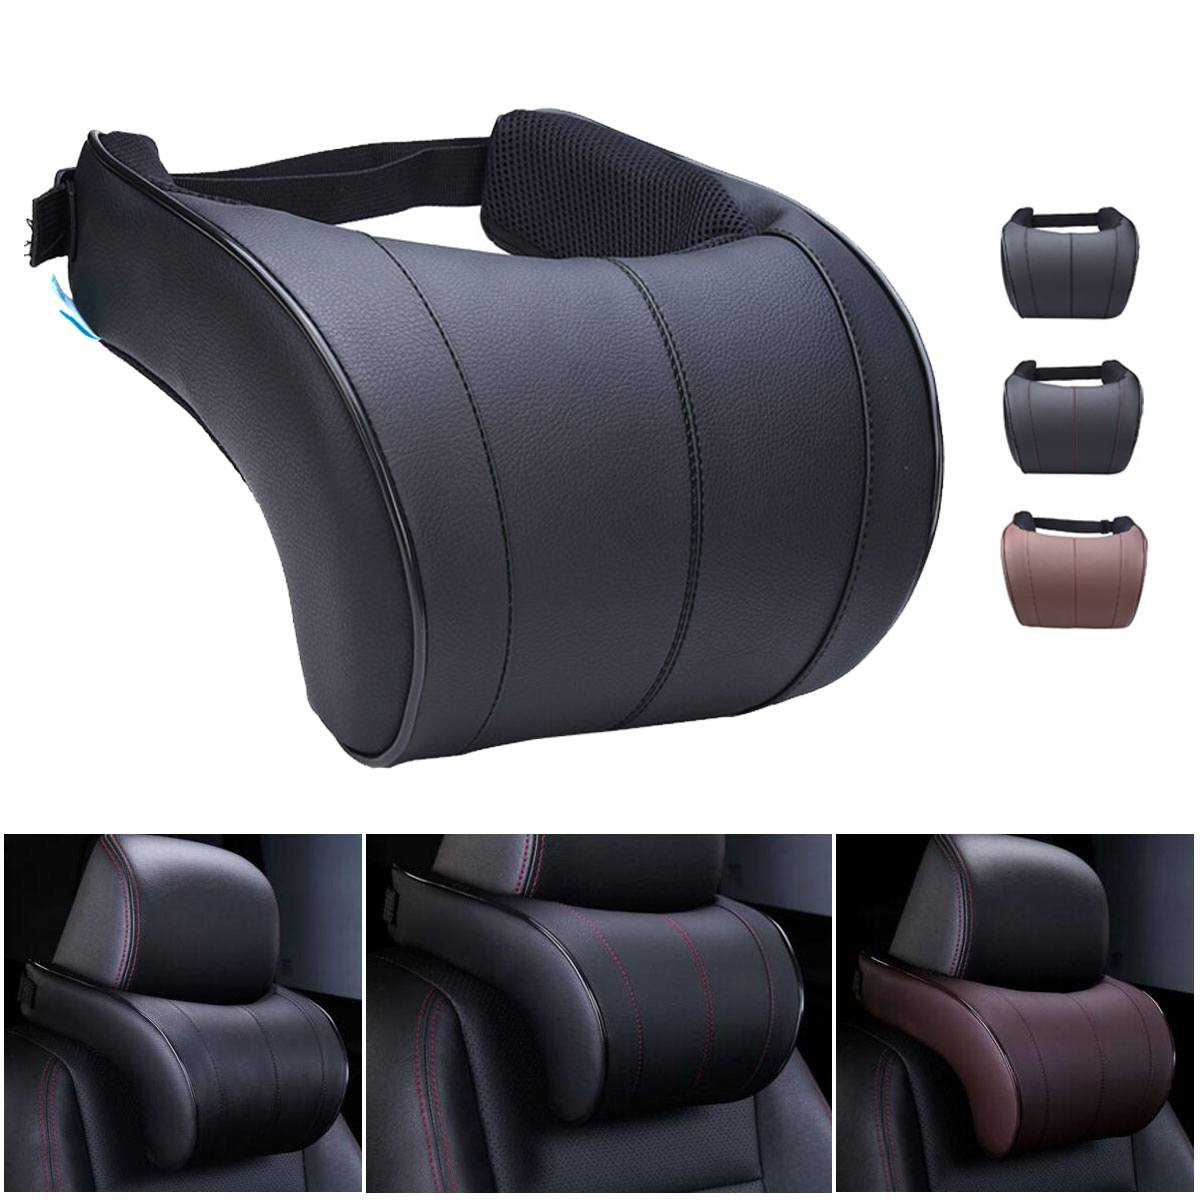 PU Leather Auto Car Neck Pillow Memory Foam Filling Neck Rest Seat Headrest Pillow For Car Gadget Auto Accessories